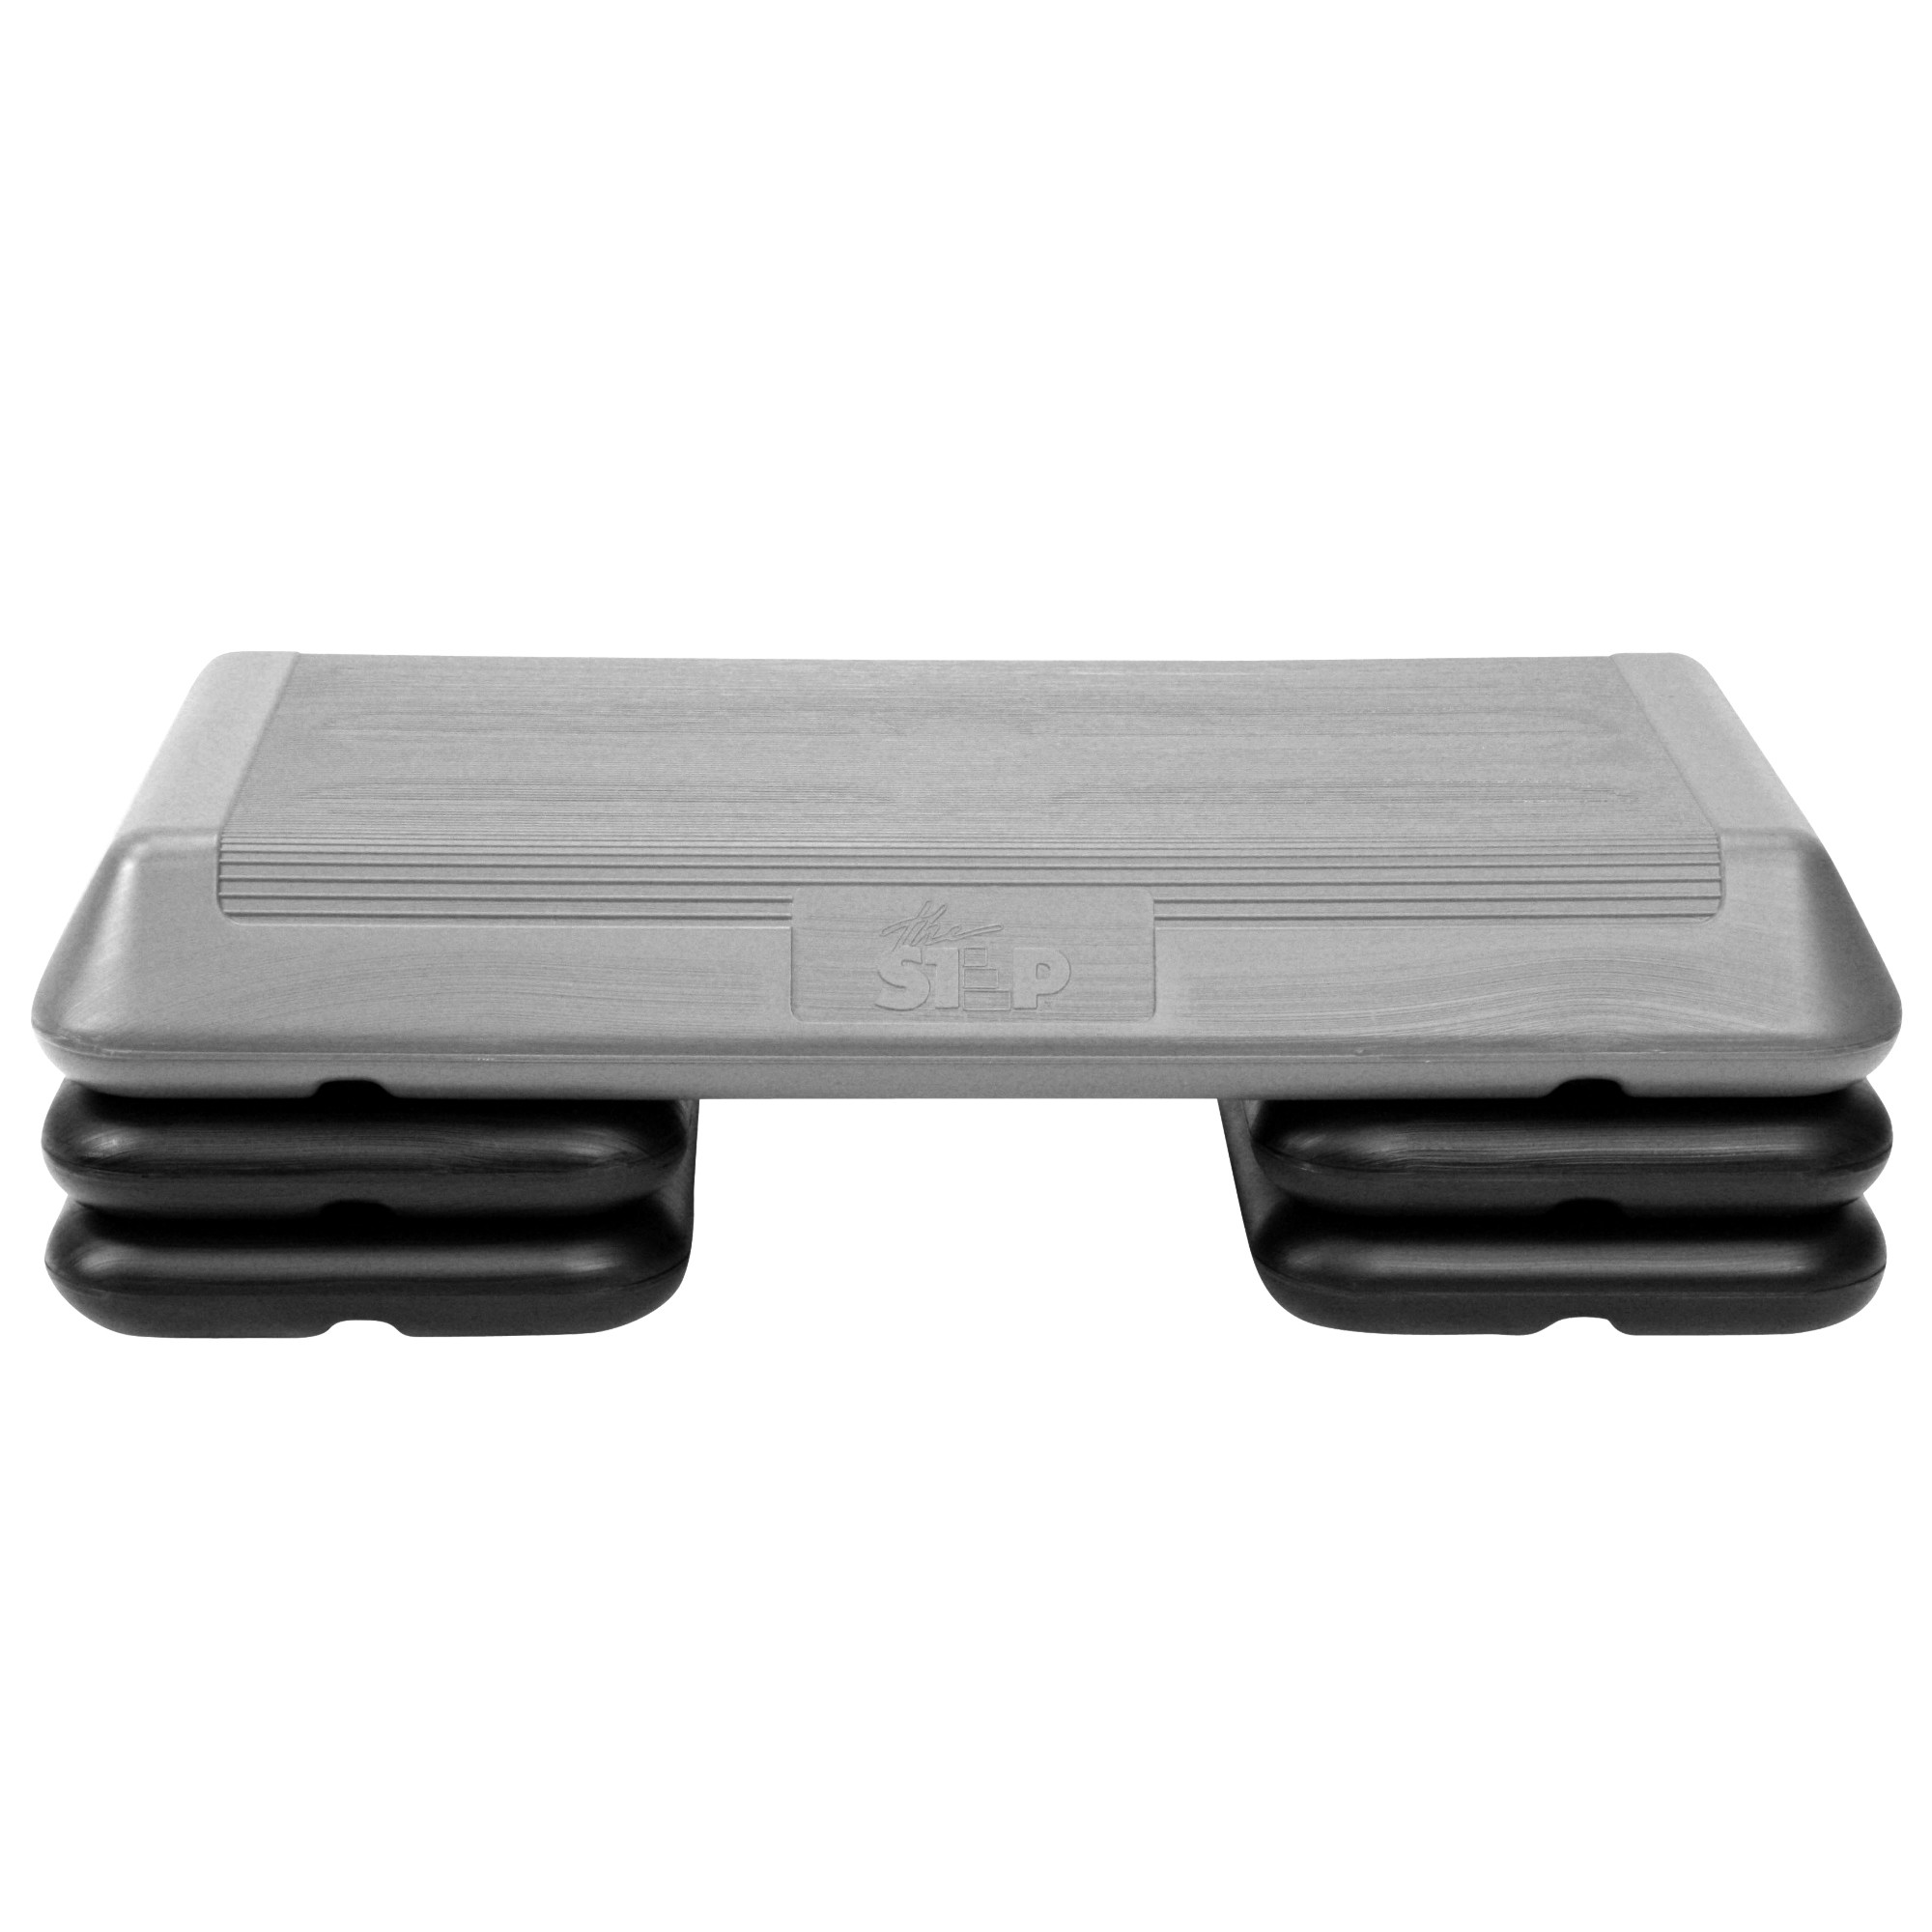 """The Step Original Aerobic Platform – Circuit Size Grey Aerobic Platform and Four Original Black Risers Included with 4"""", 6"""", and 8"""" Platform Height Options"""